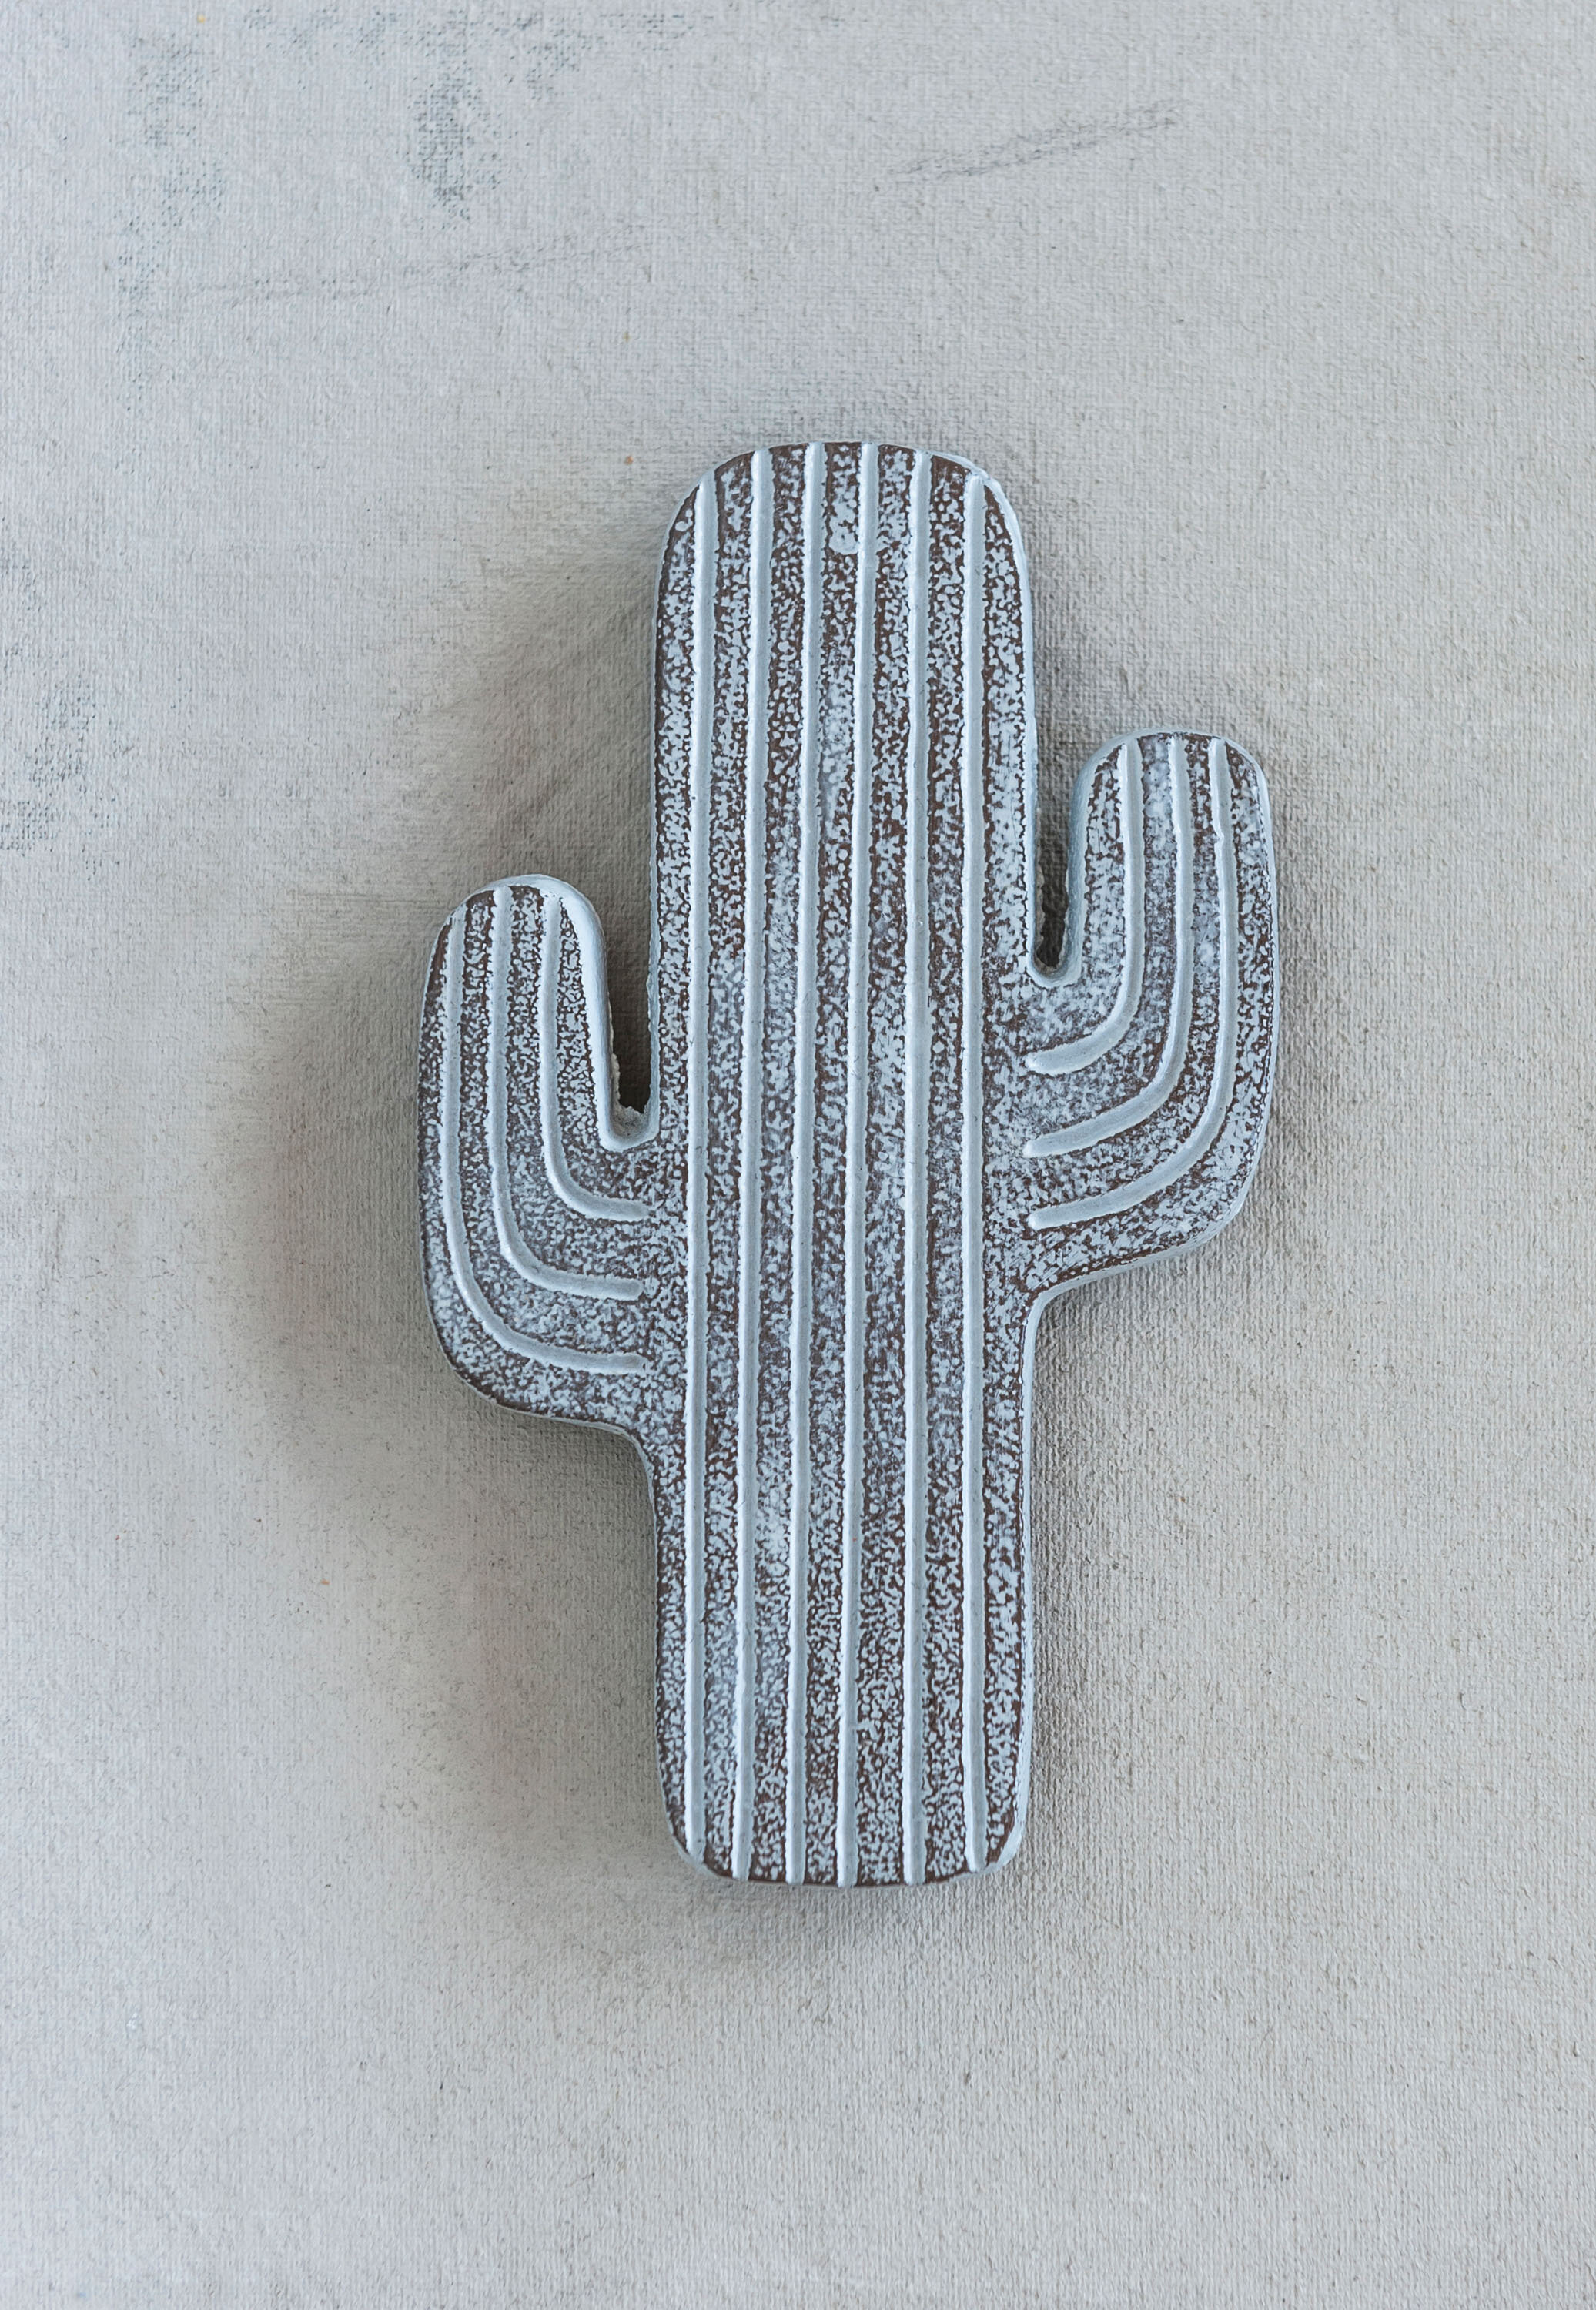 Union Rustic Hague Cactus Metal Trivet Wayfair